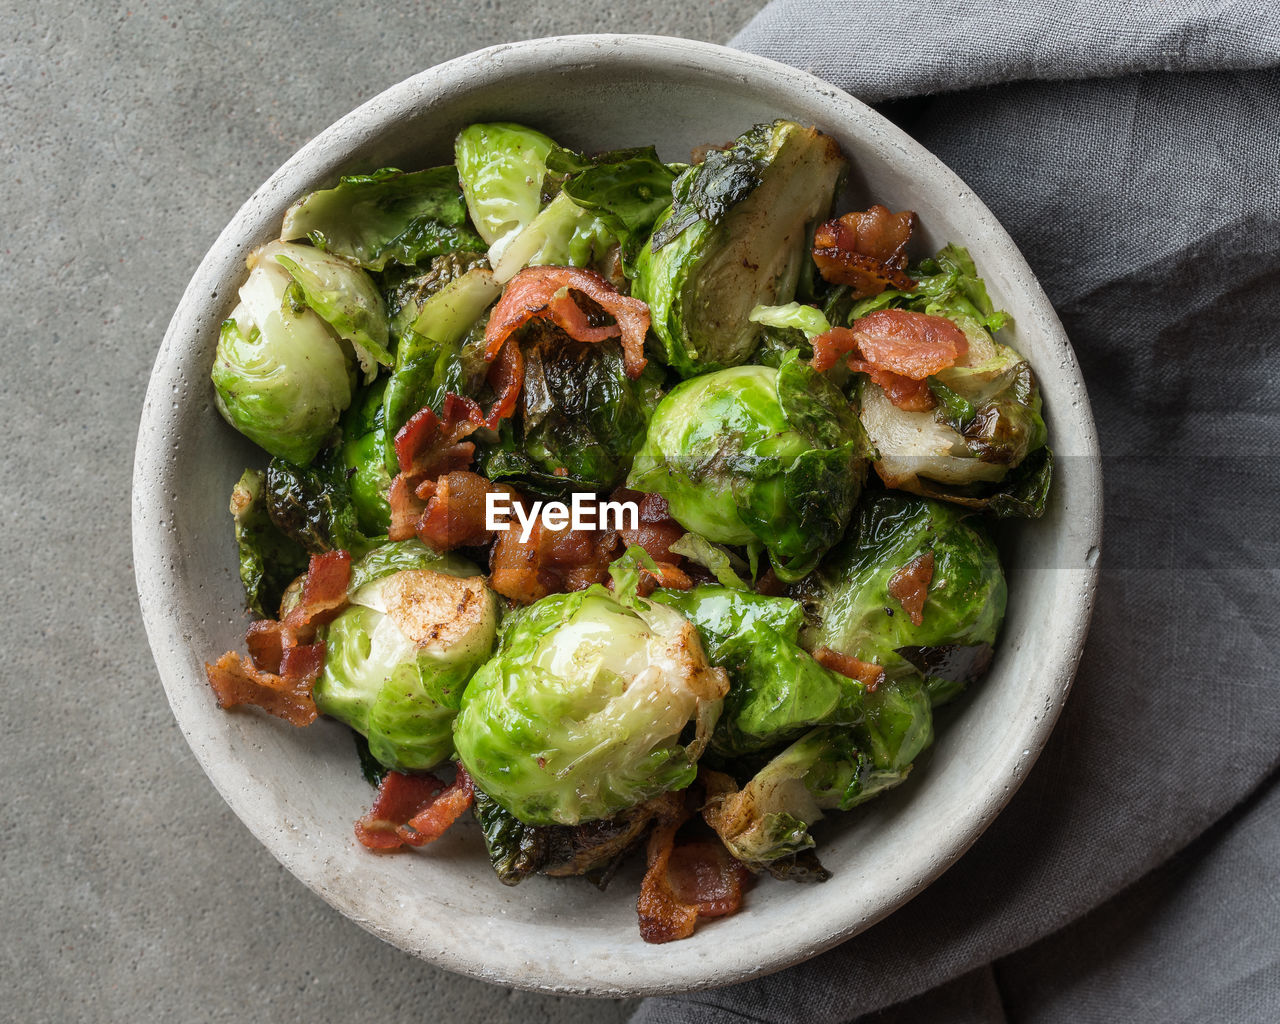 Directly above shot of brussels sprout in bowl on table